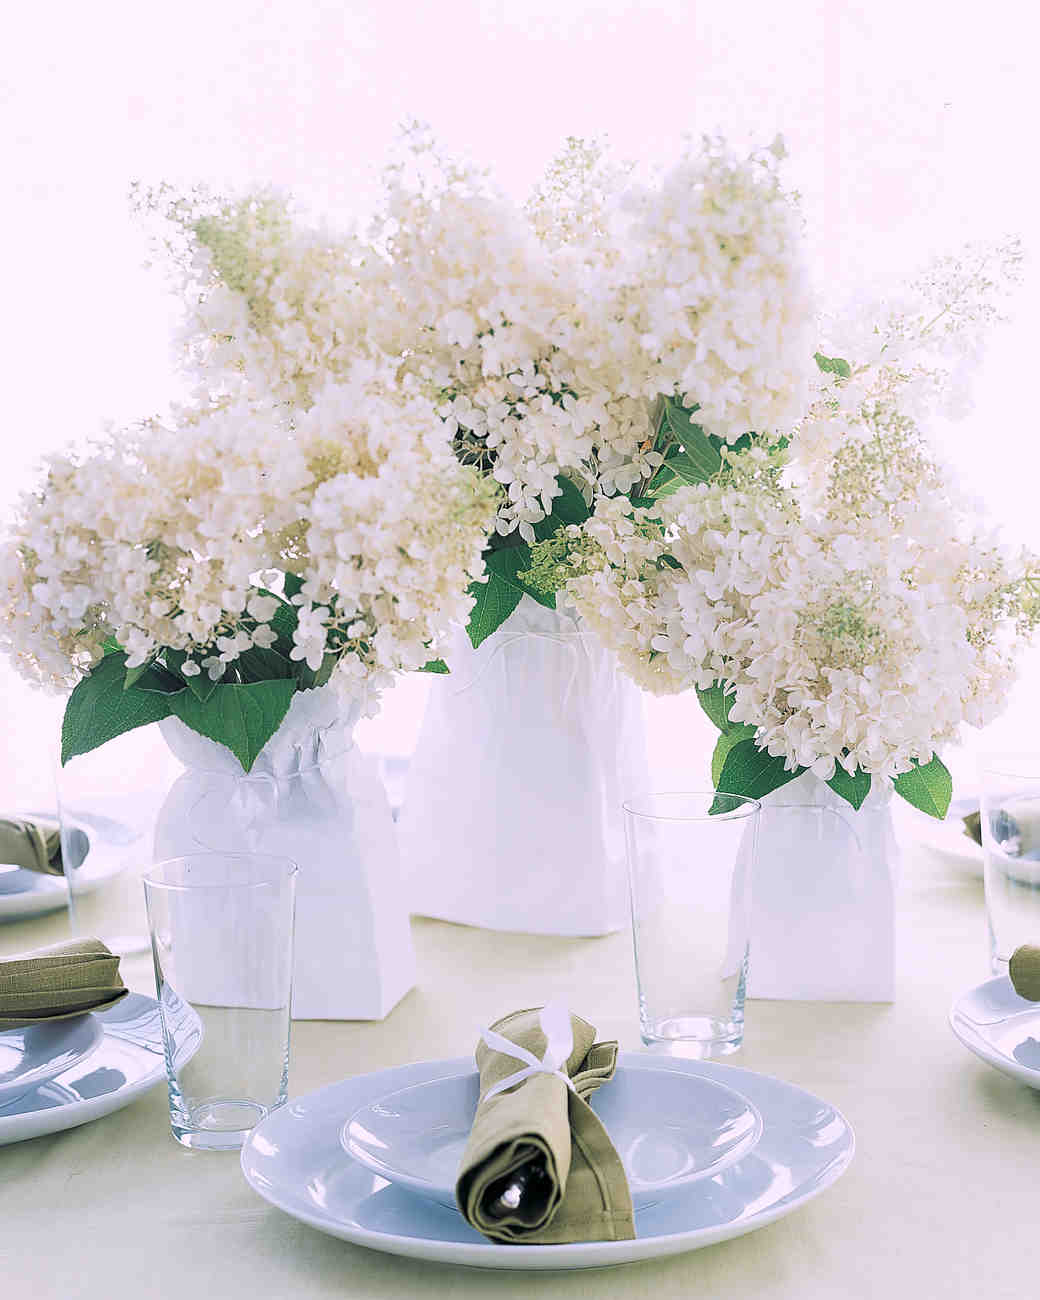 Flower Arrangement Ideas For Weddings: Affordable Wedding Centerpieces That Don't Look Cheap